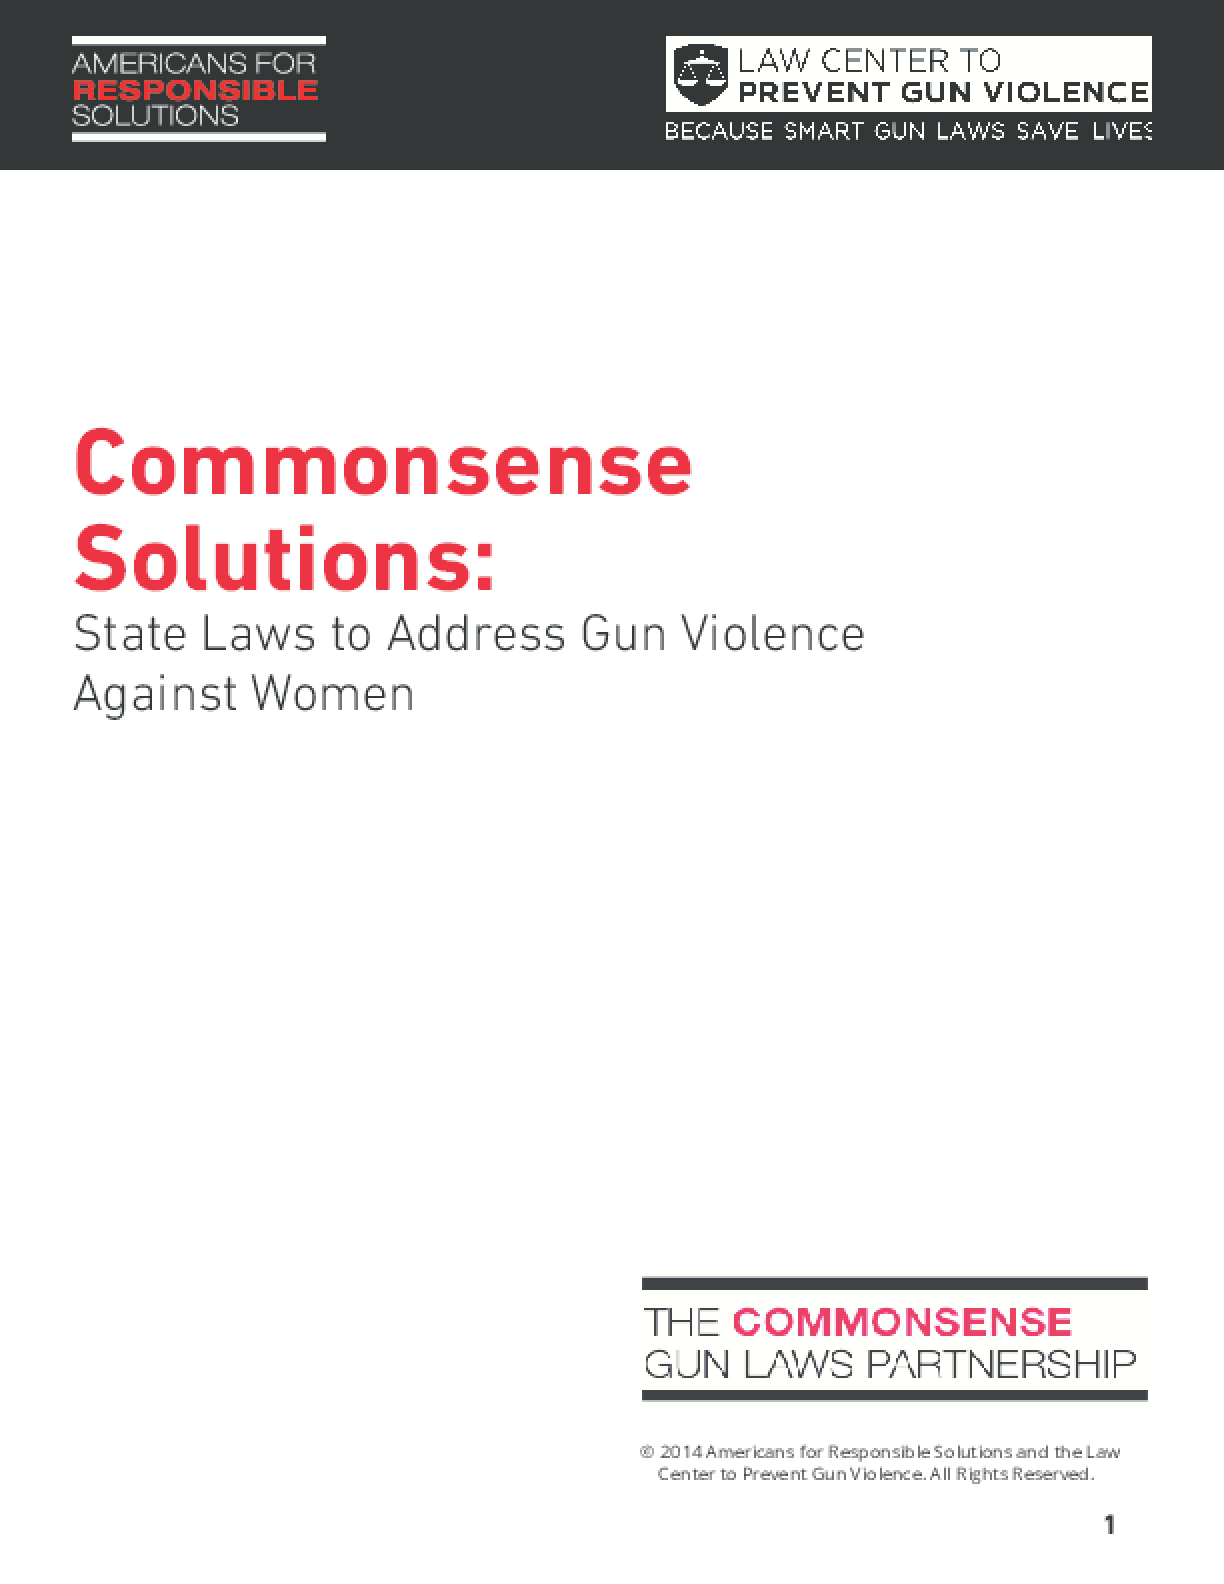 Commonsense Solutions: State Laws to Address Gun Violence Against Women